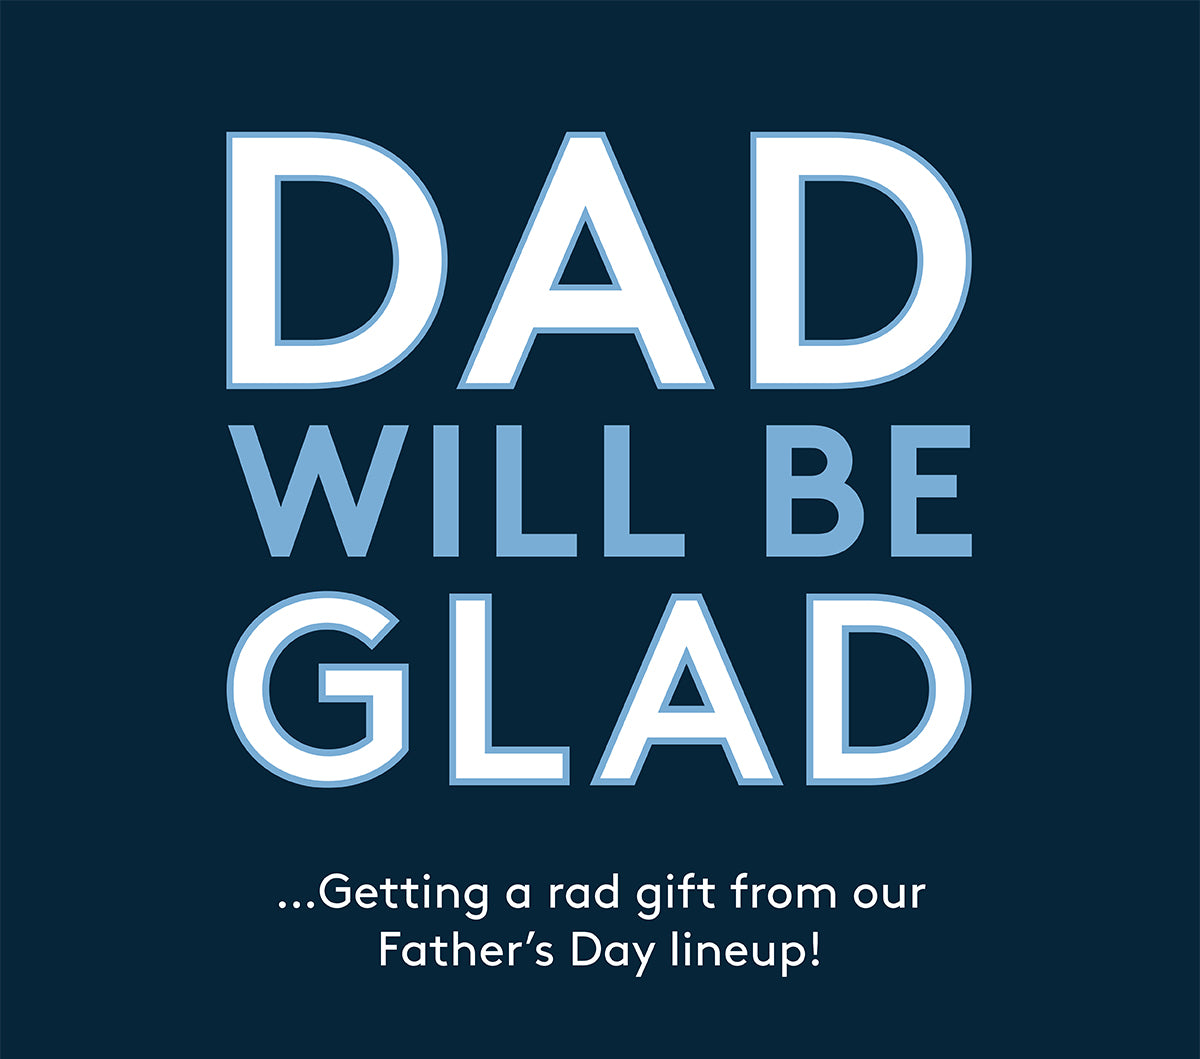 DAD WILL BE GLAD...Getting a rad gift from our Father's Day Lineup!